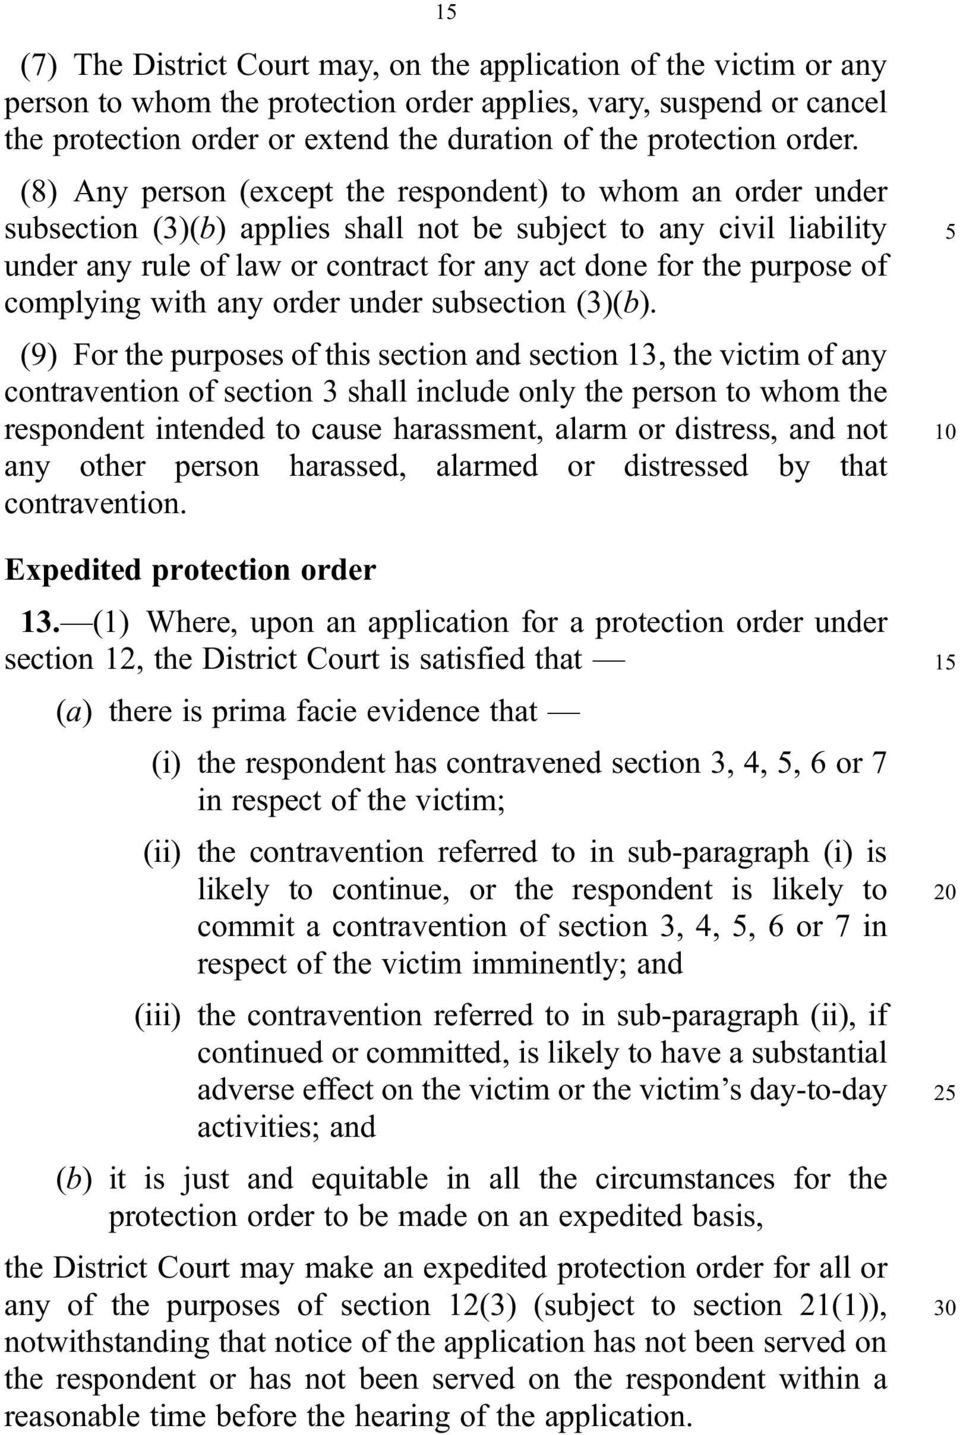 (8) Any person (except the respondent) to whom an order under subsection (3)(b) applies shall not be subject to any civil liability under any rule of law or contract for any act done for the purpose